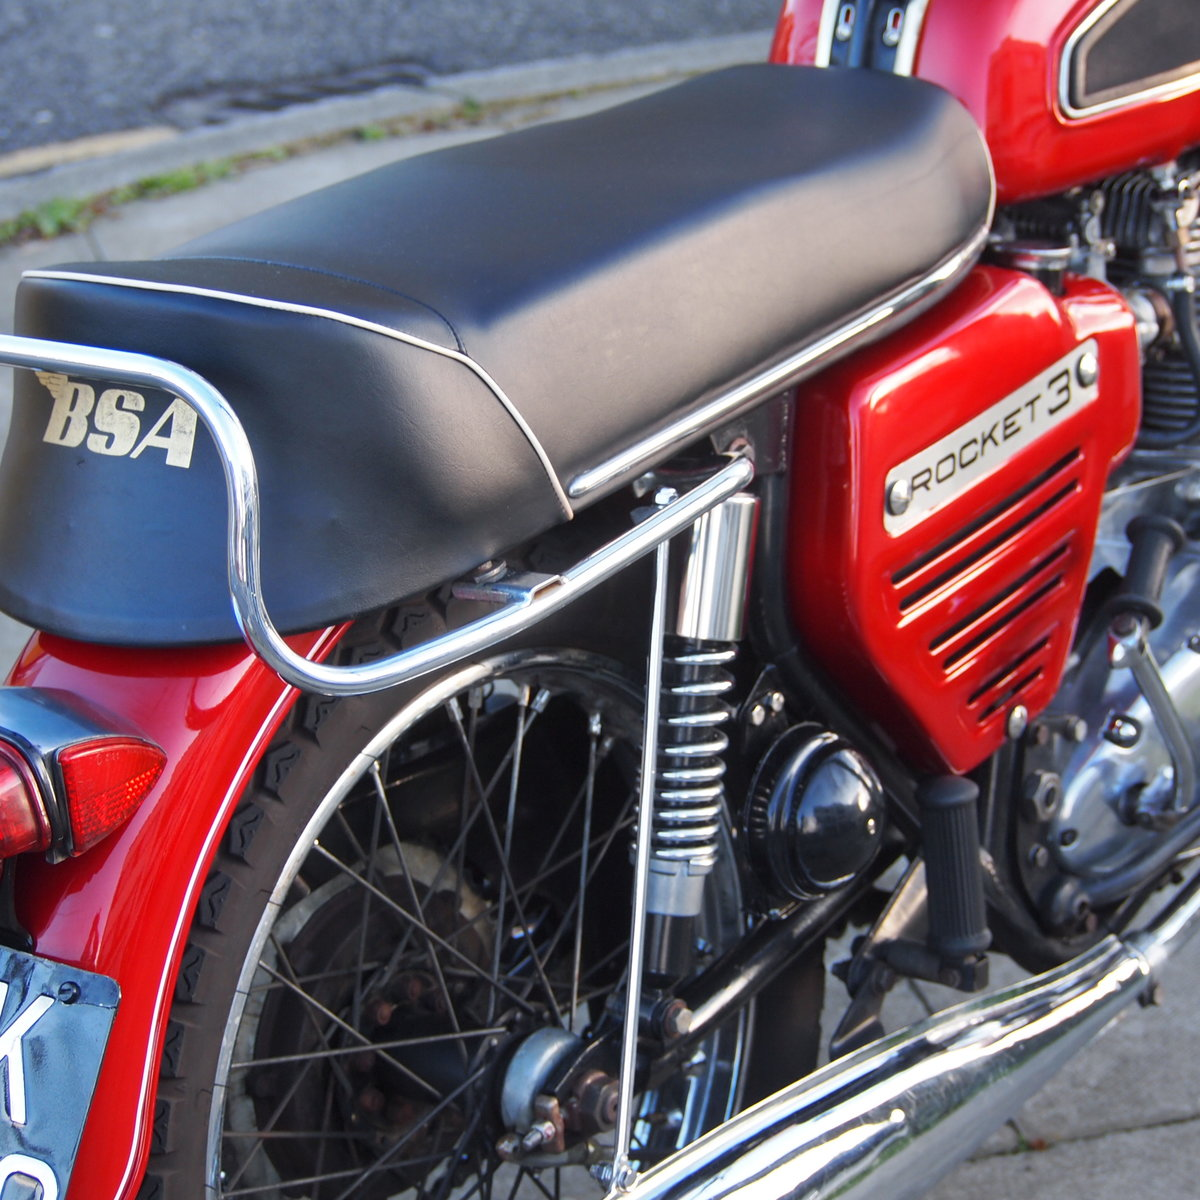 1969 BSA Rocket 3 with Electric Start, Early 1968 Model. For Sale (picture 2 of 6)